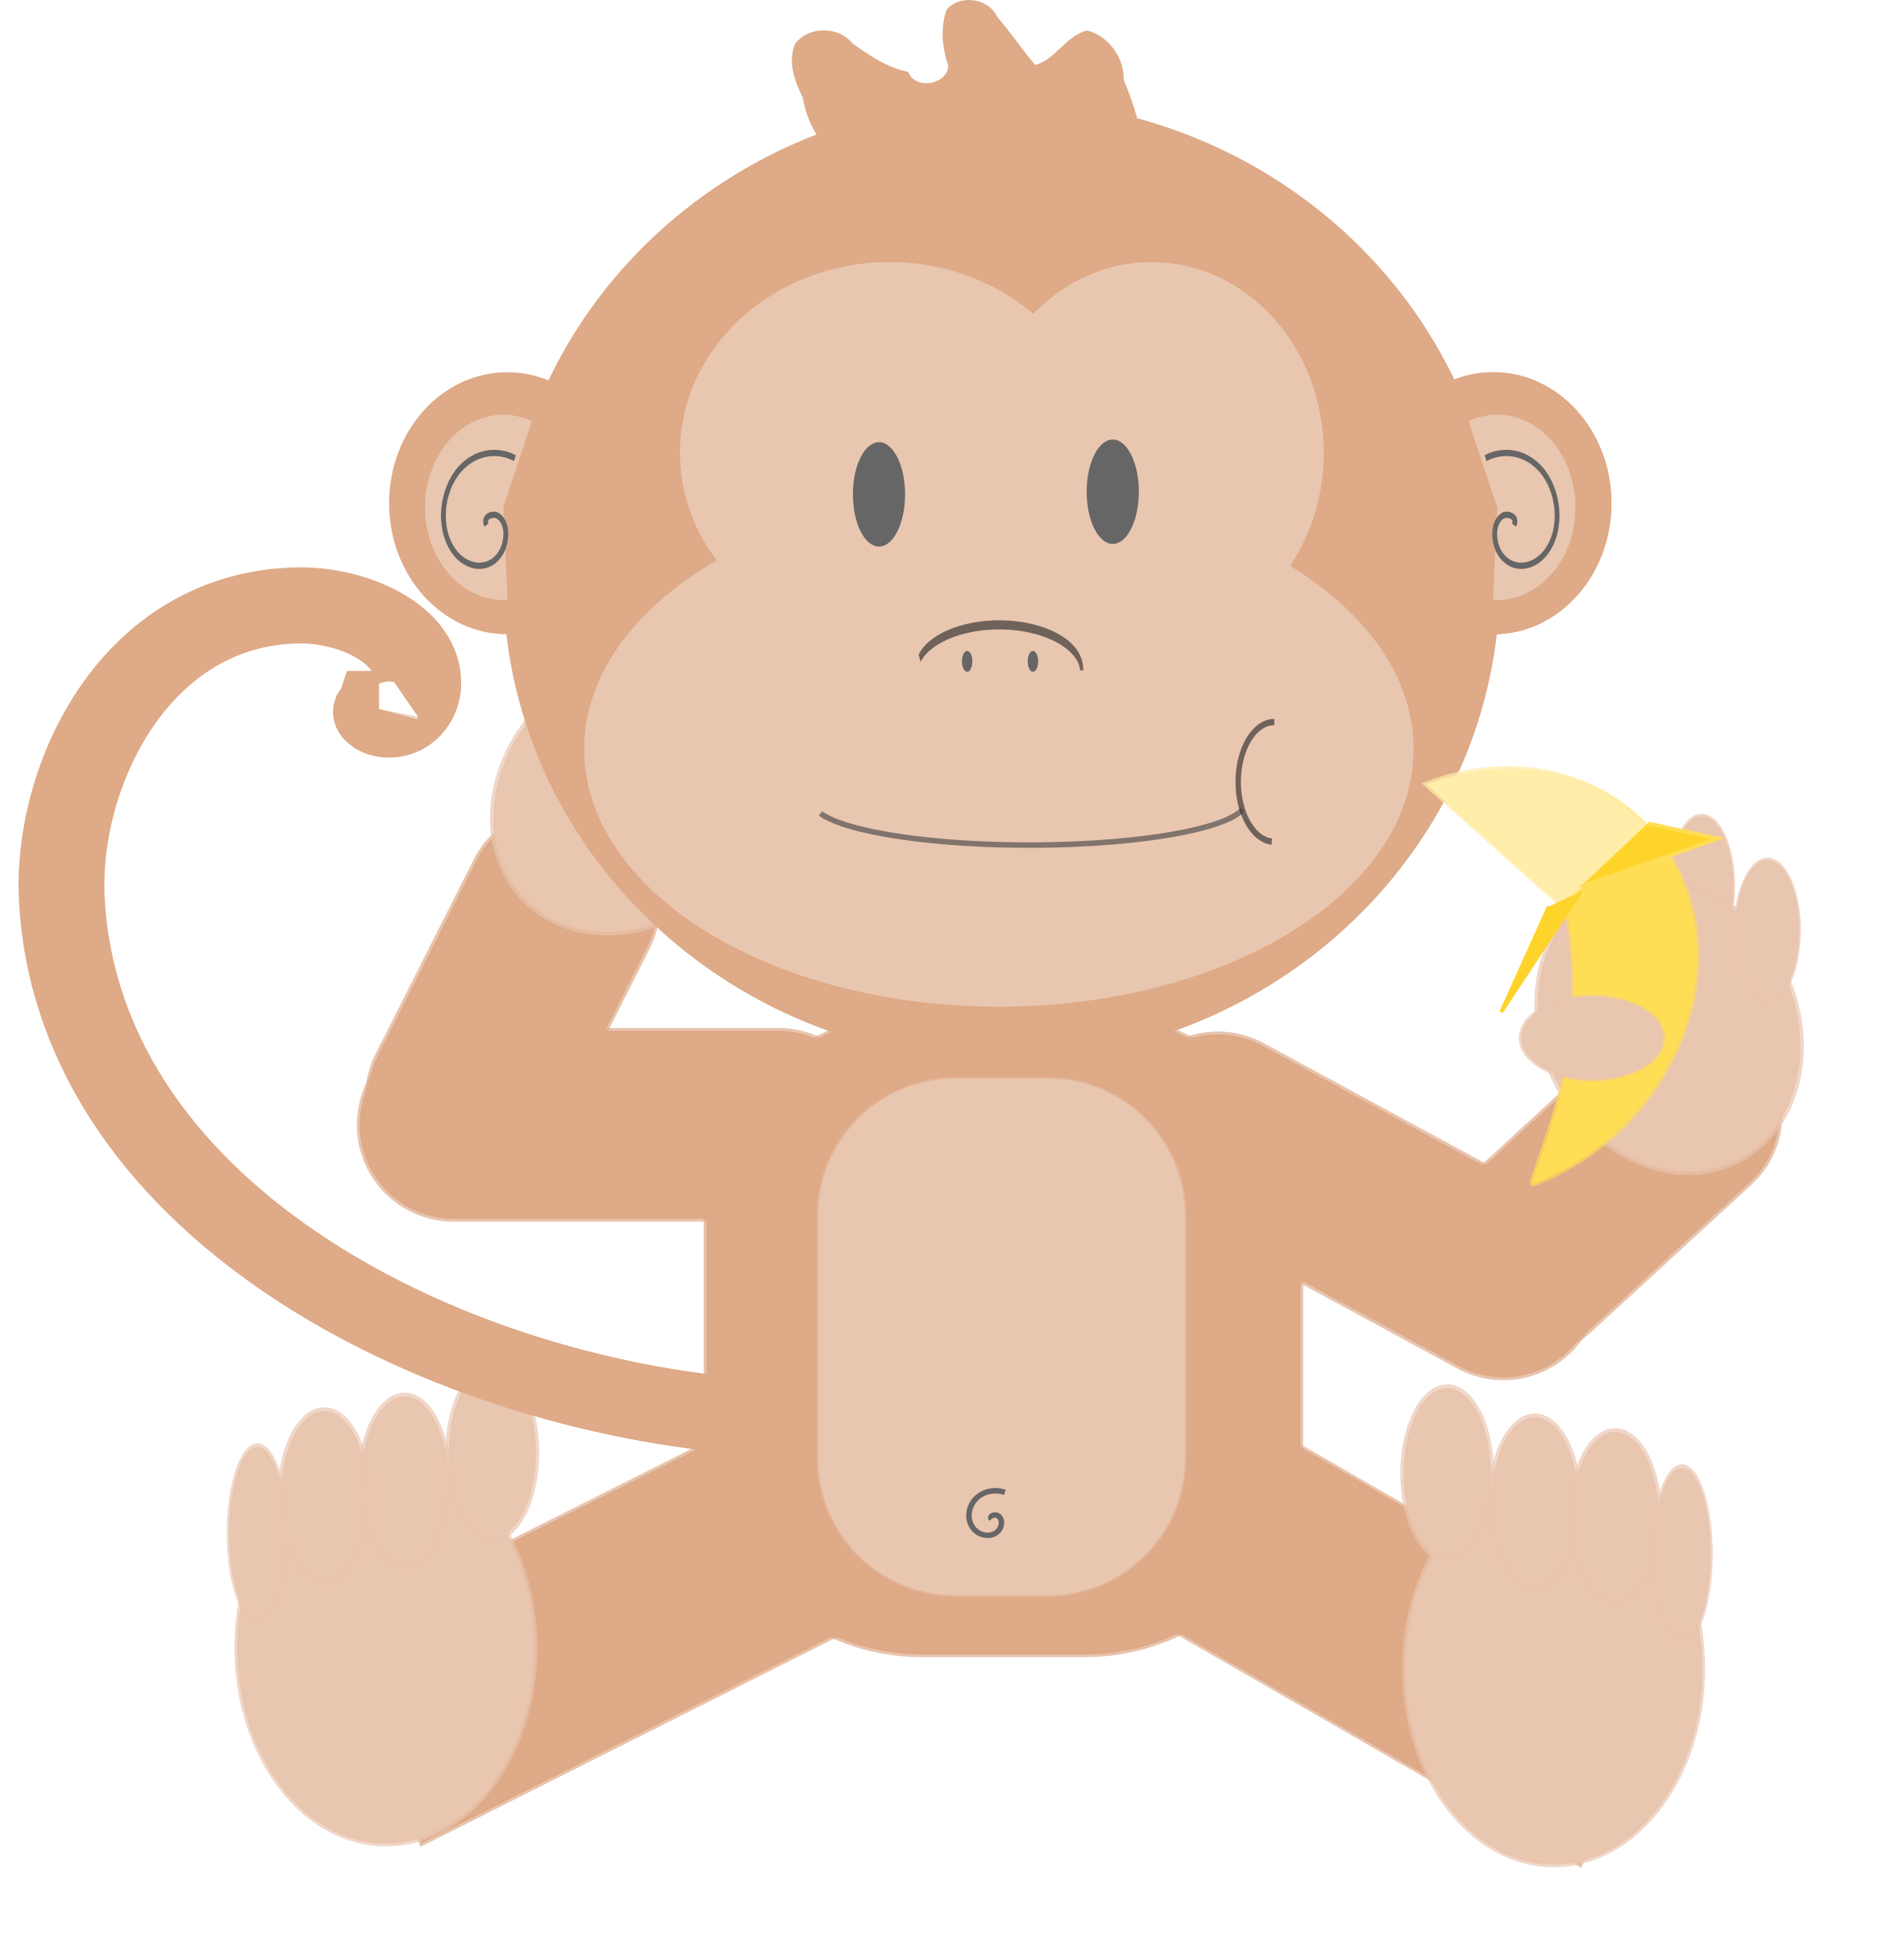 graphic freeuse download Ape clipart cute. Cartoon monkey without background